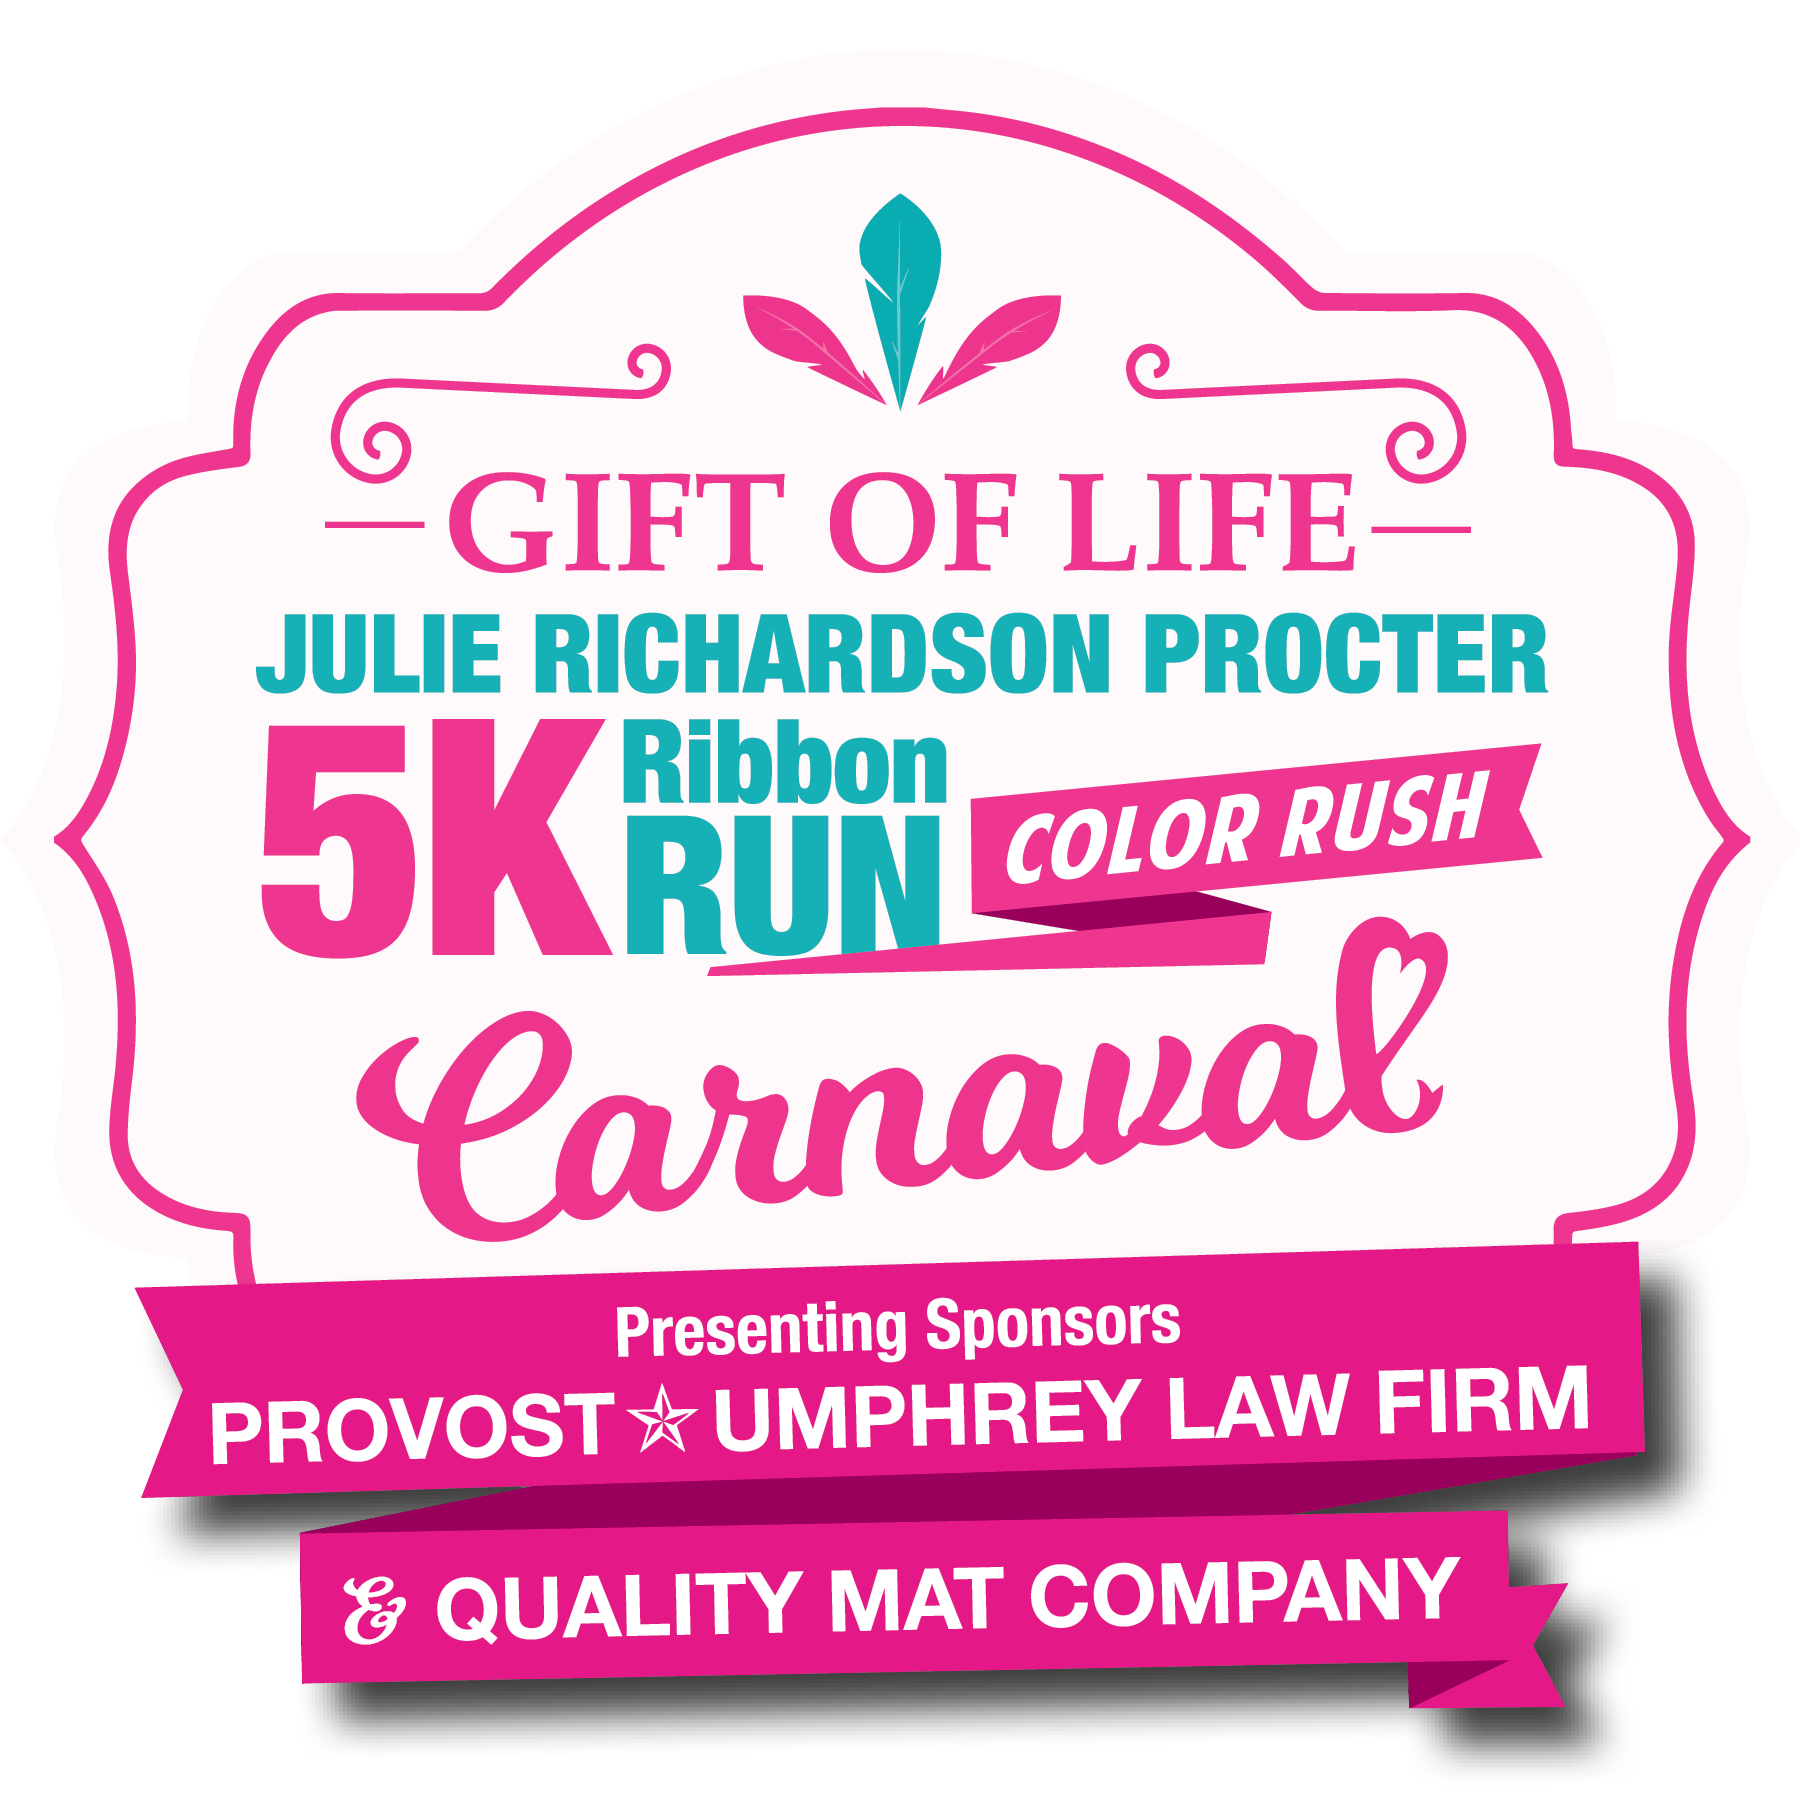 Gift of Life Julie Richardson Procter 5K Ribbon Run Color Rush